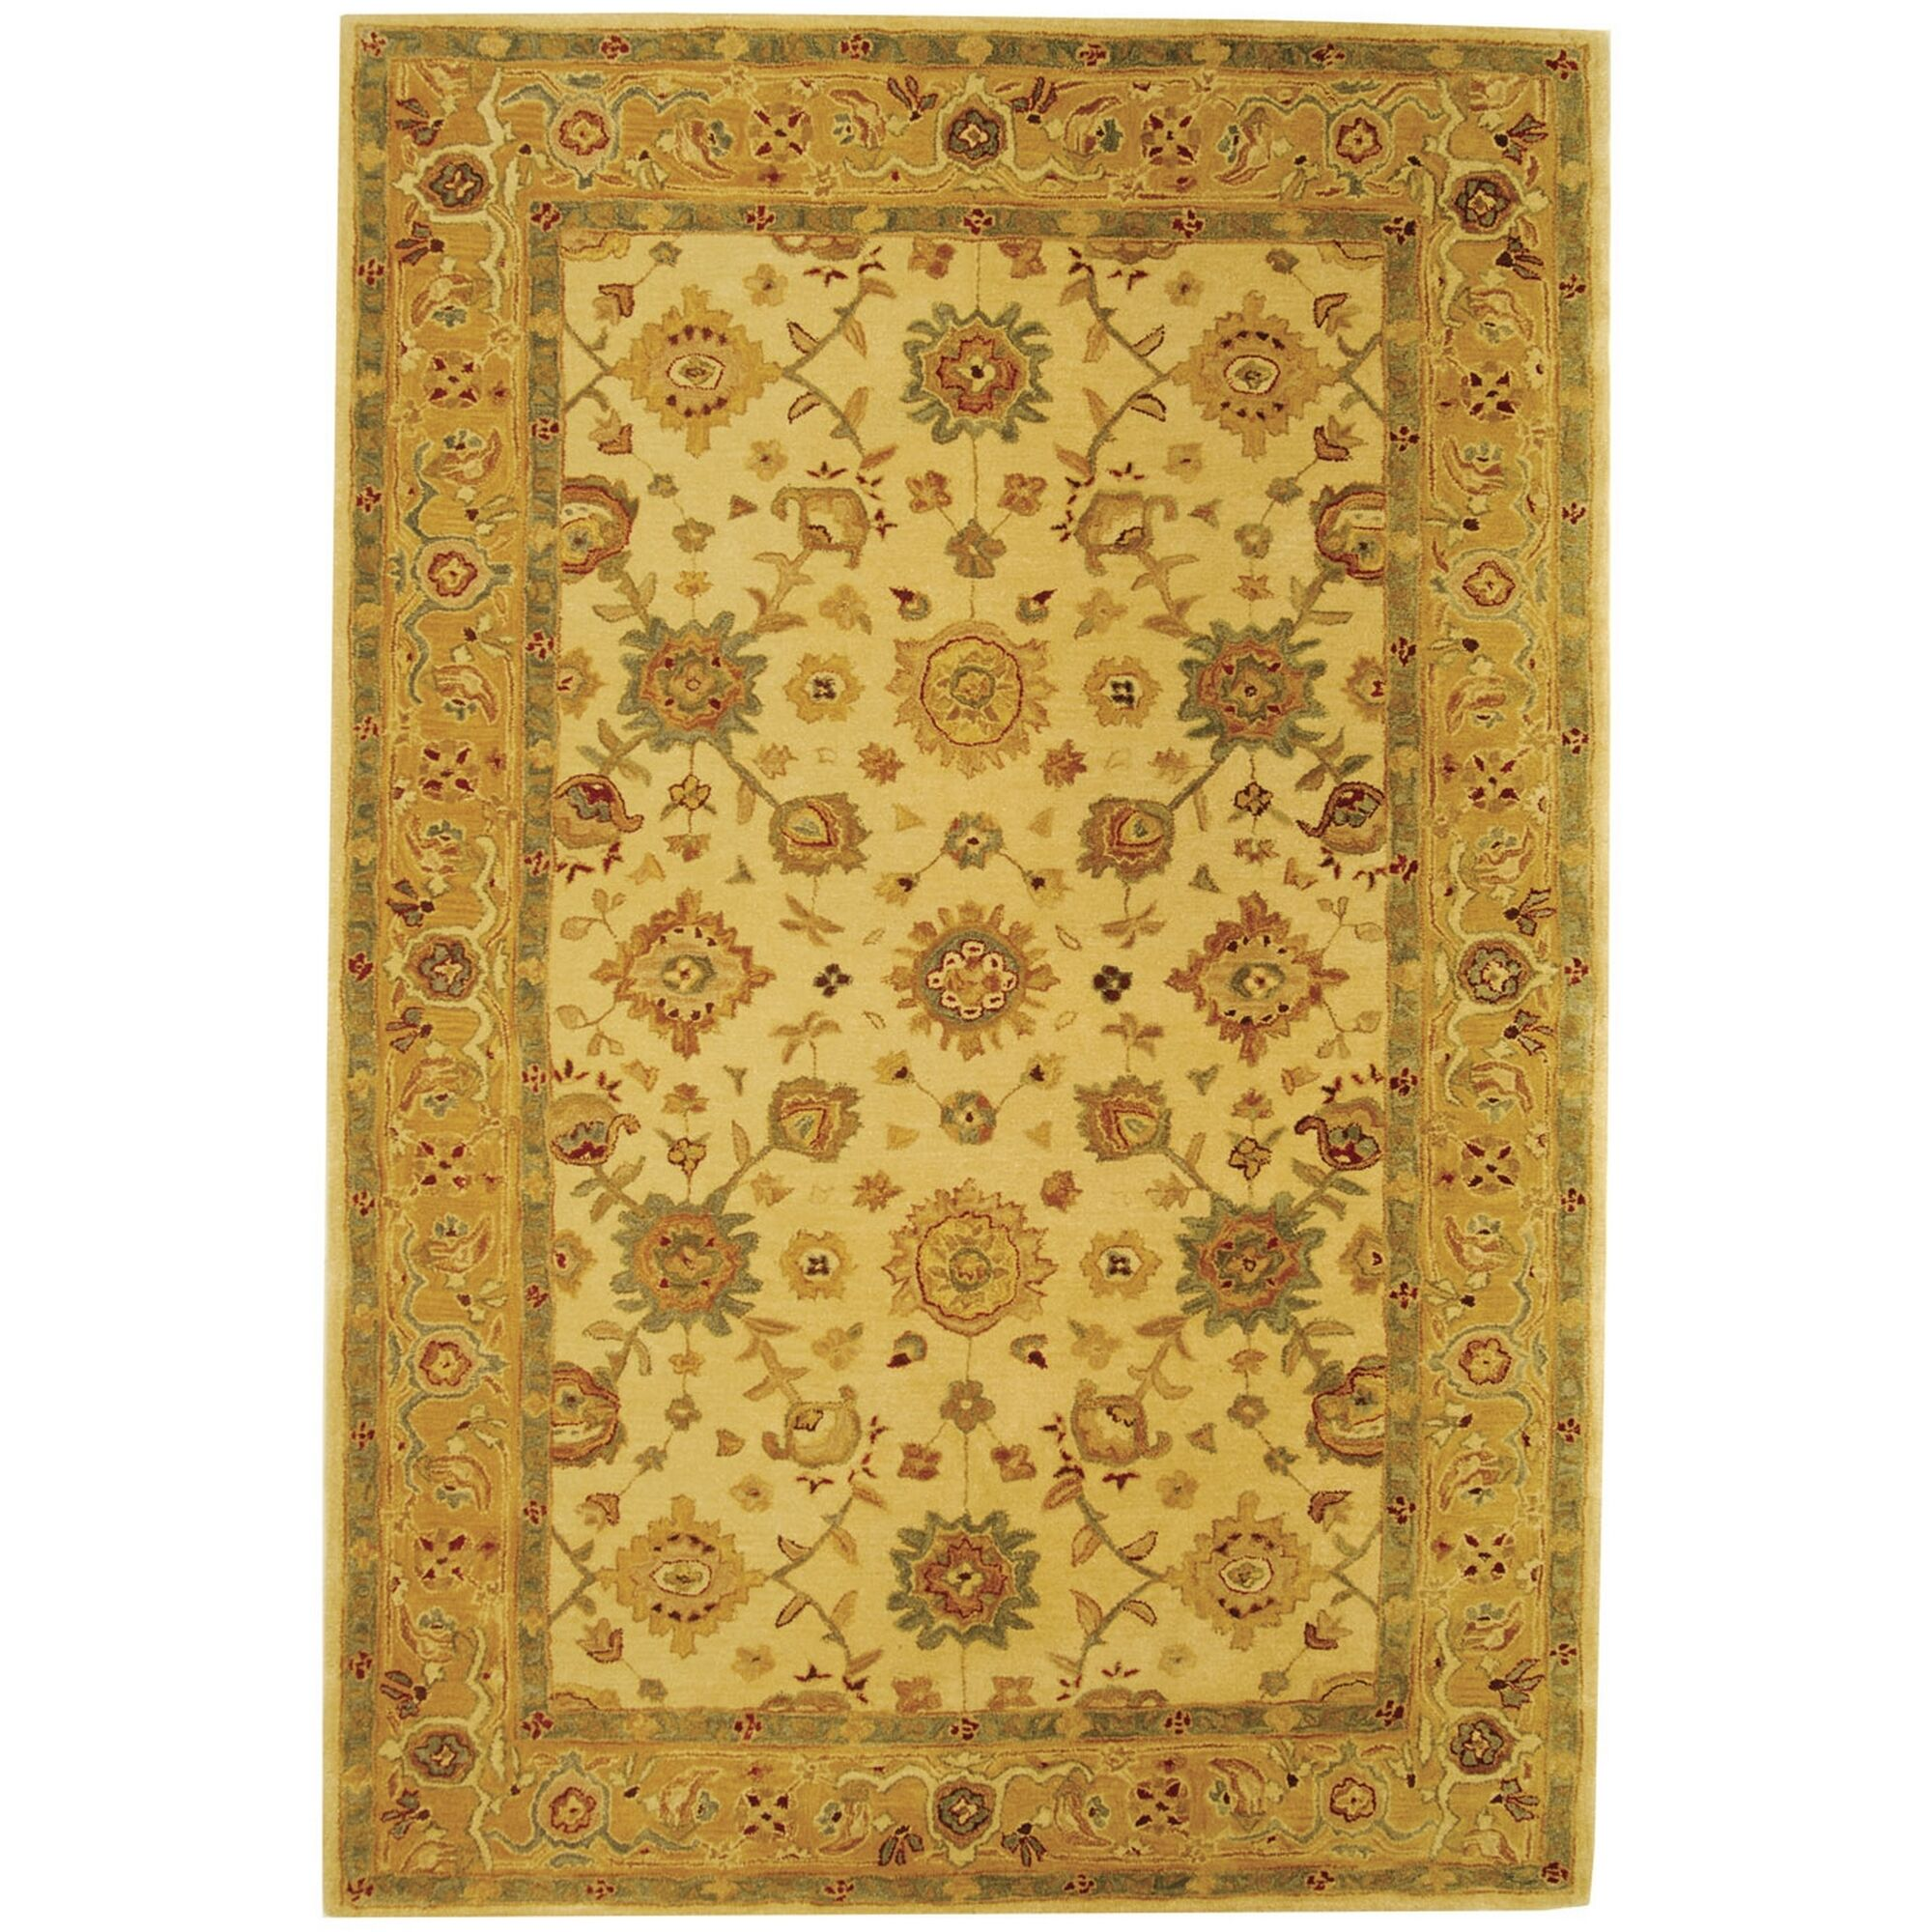 Pritchard Hand-Woven Wool Ivory/Gold Area Rug Rug Size: Rectangle 6' x 9'